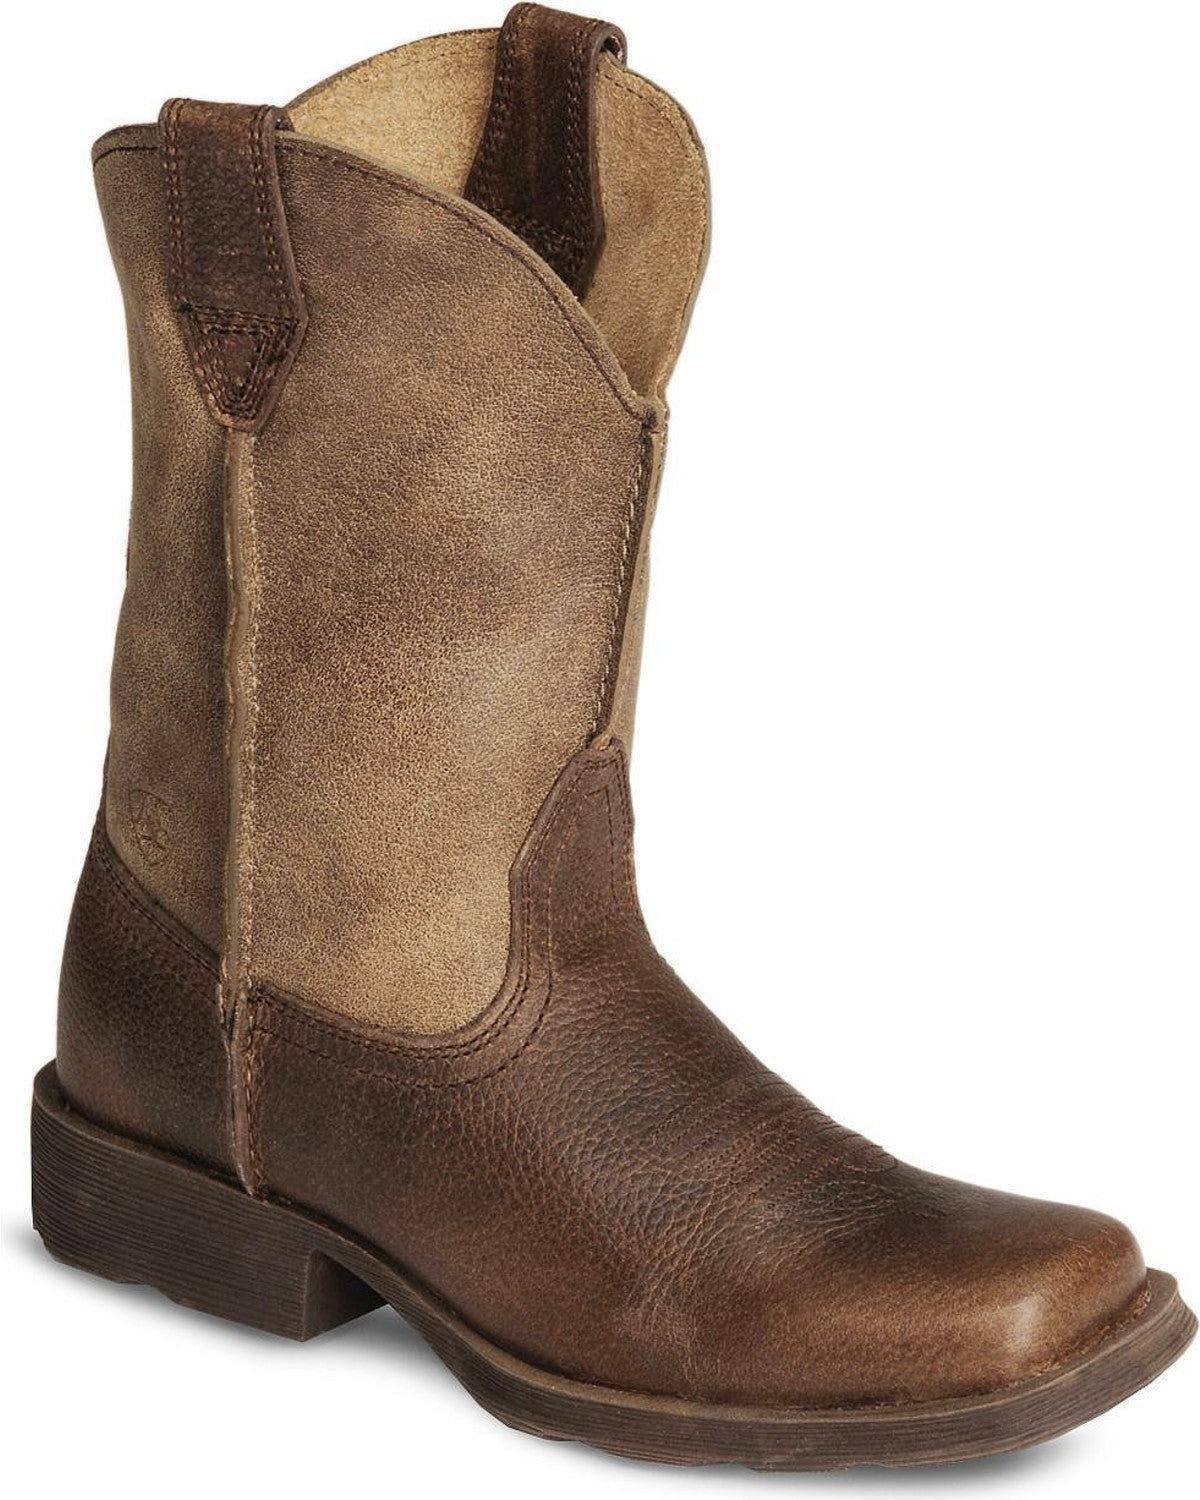 Kid's Ariat Rambler